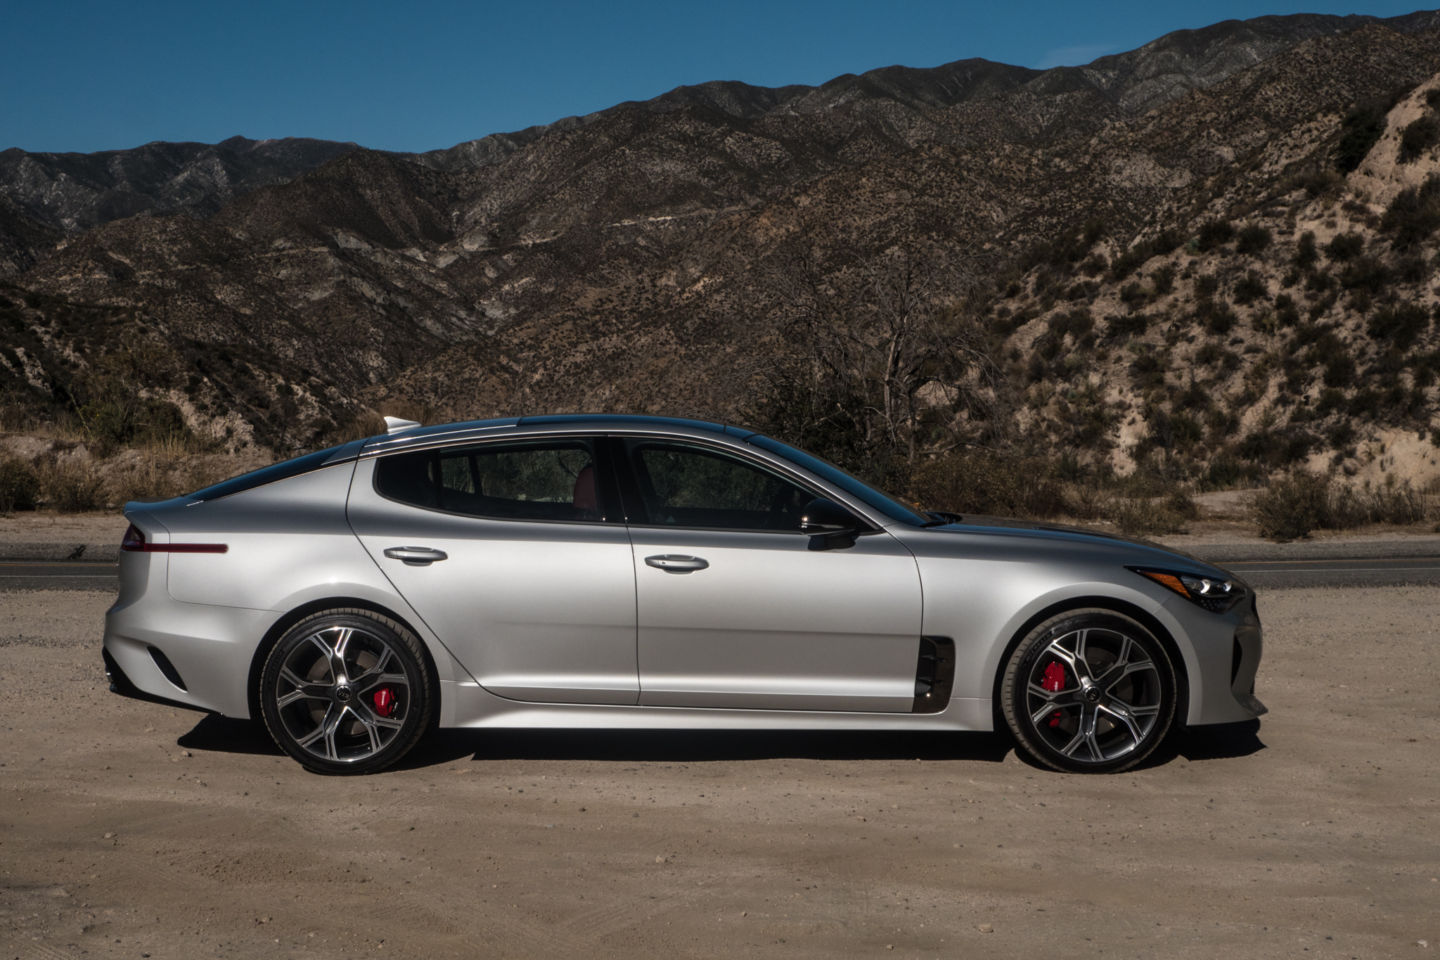 official silky silver kia stinger pictures thread kia stinger forum kia stinger forum